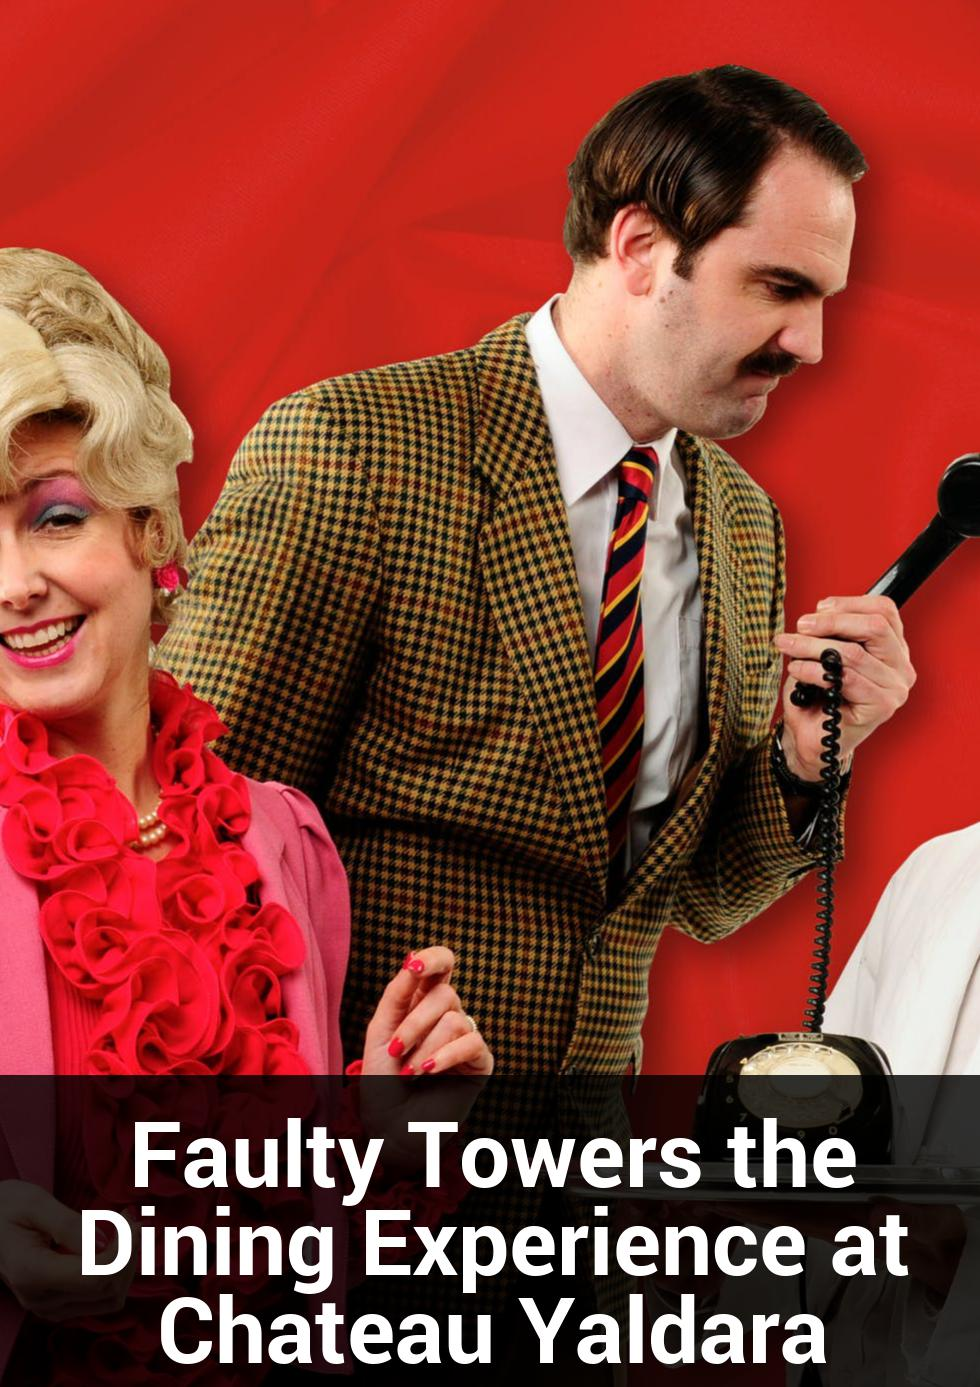 Faulty Towers the Dining Experience at Chateau Yaldara at Chateau Yaldara Manor House